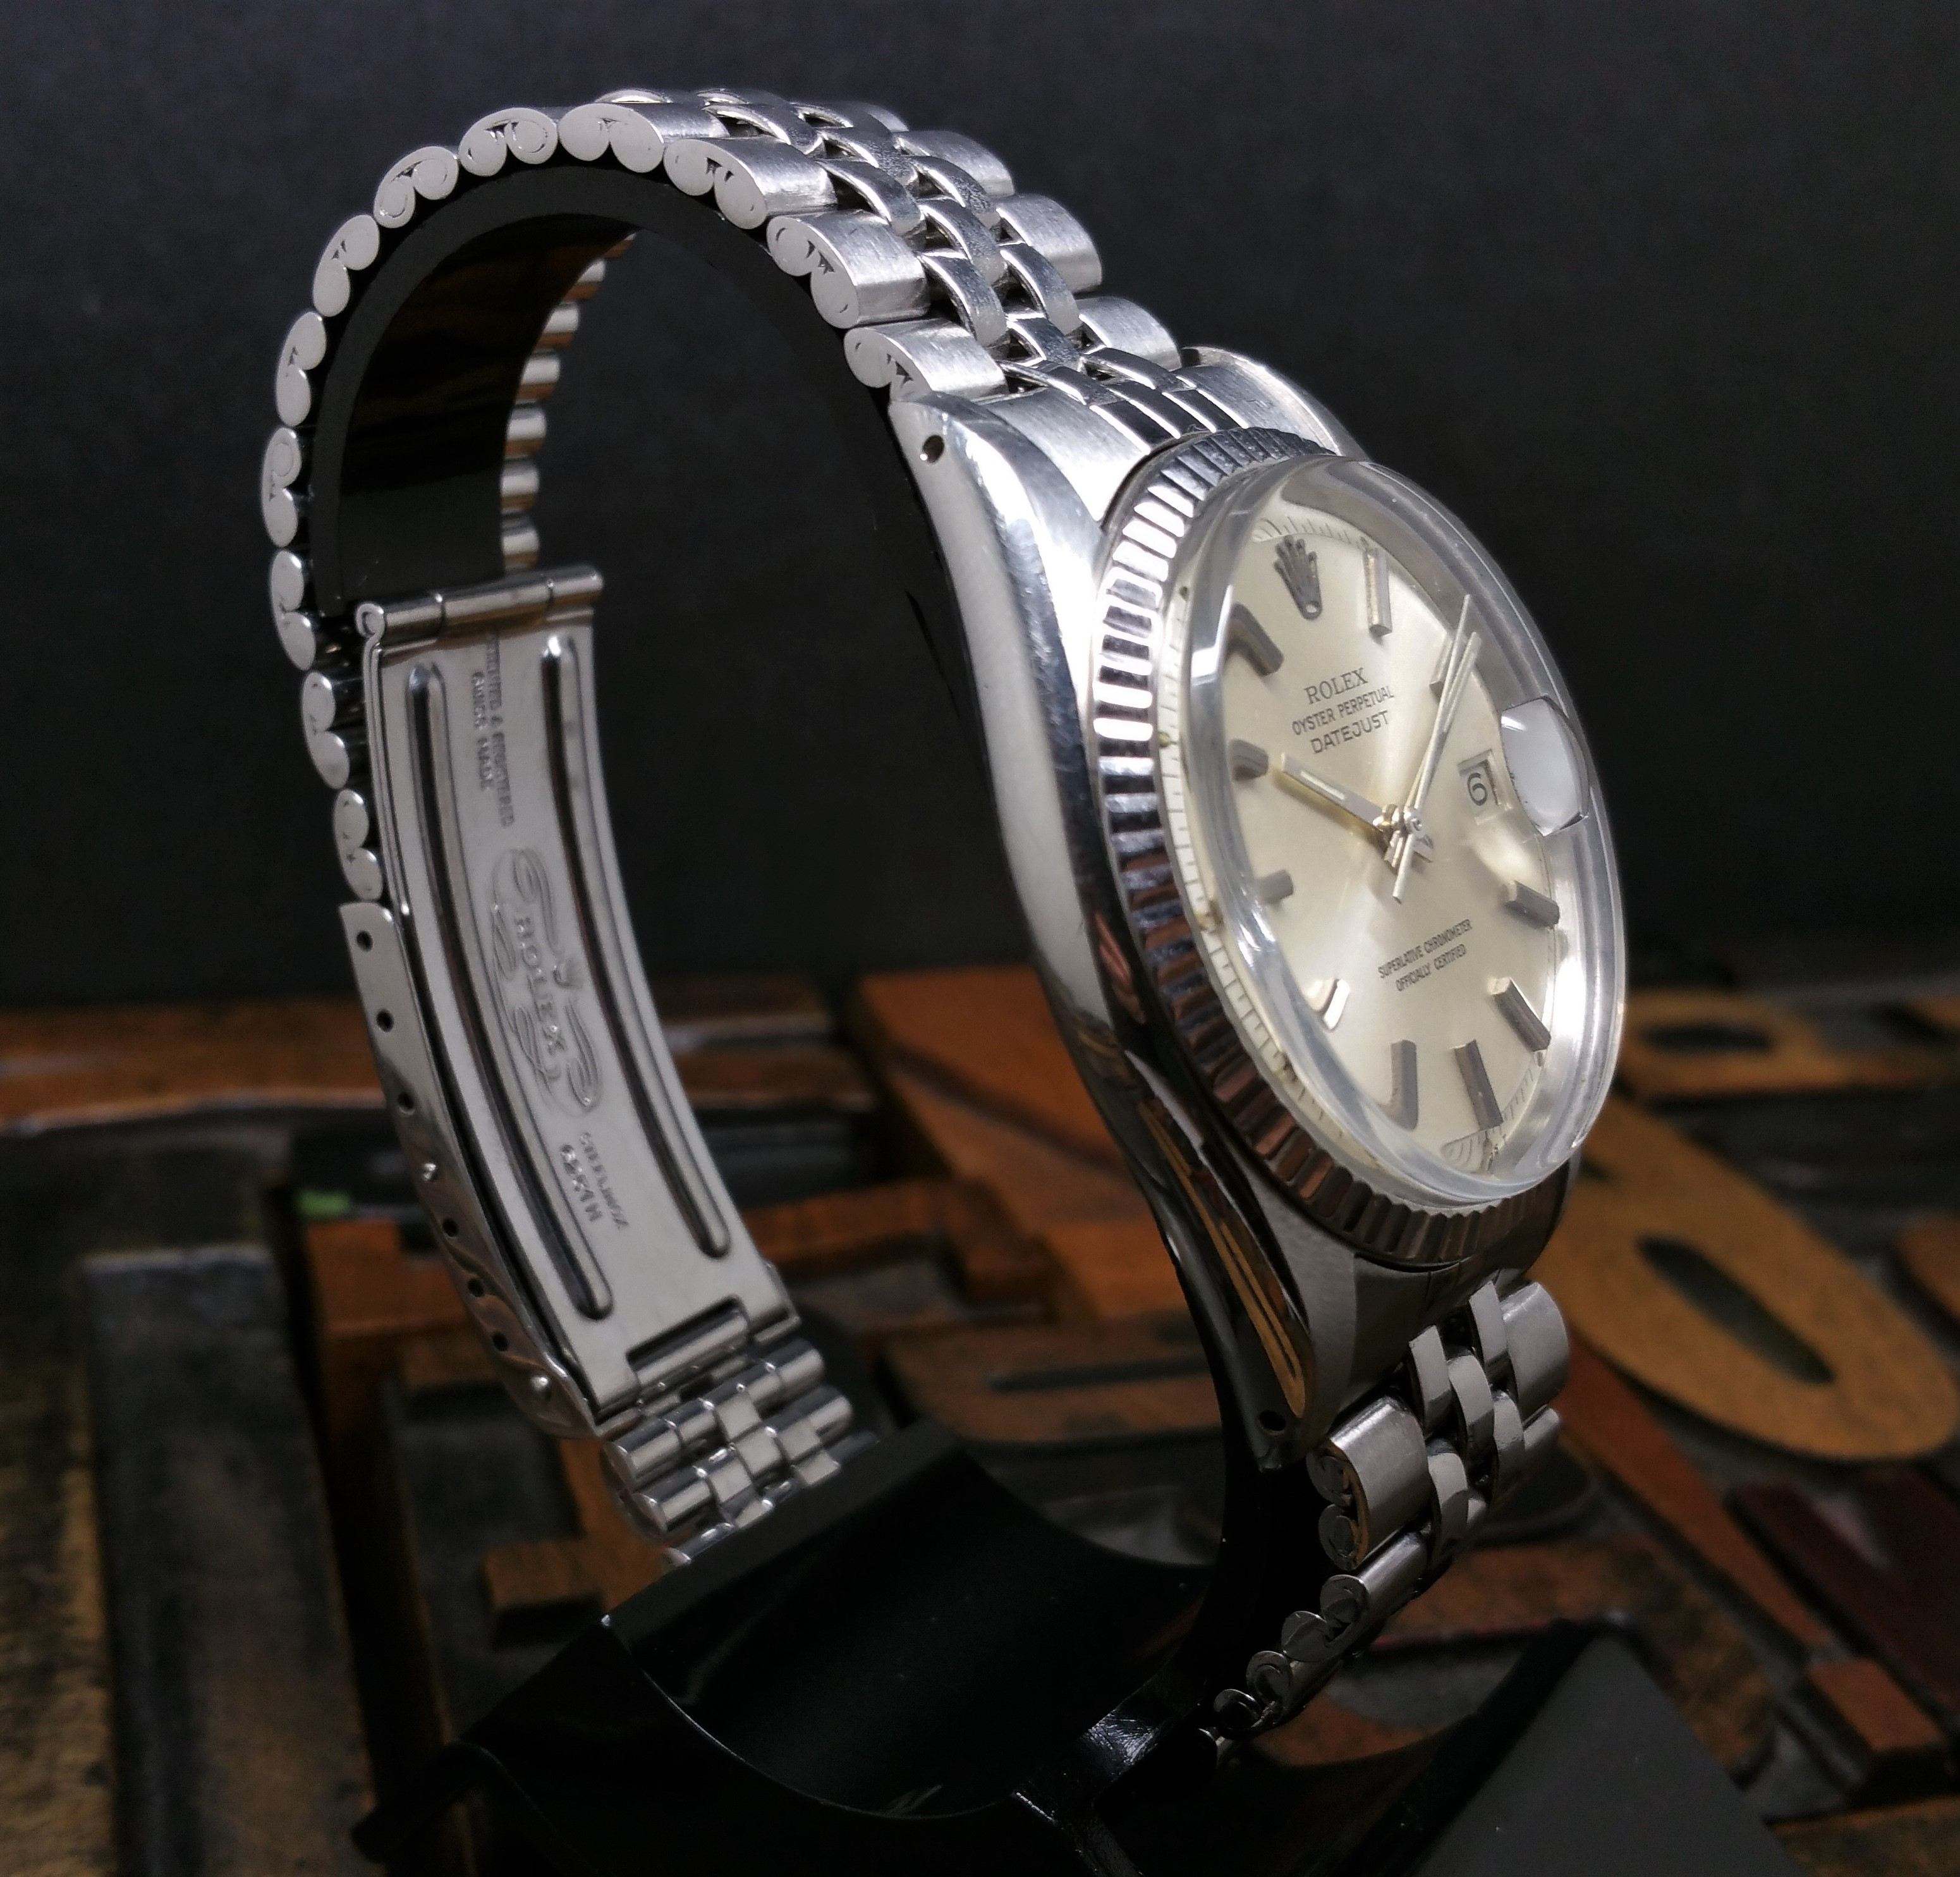 1971 Rolex Datejust 1601 Silver Dial with Papers